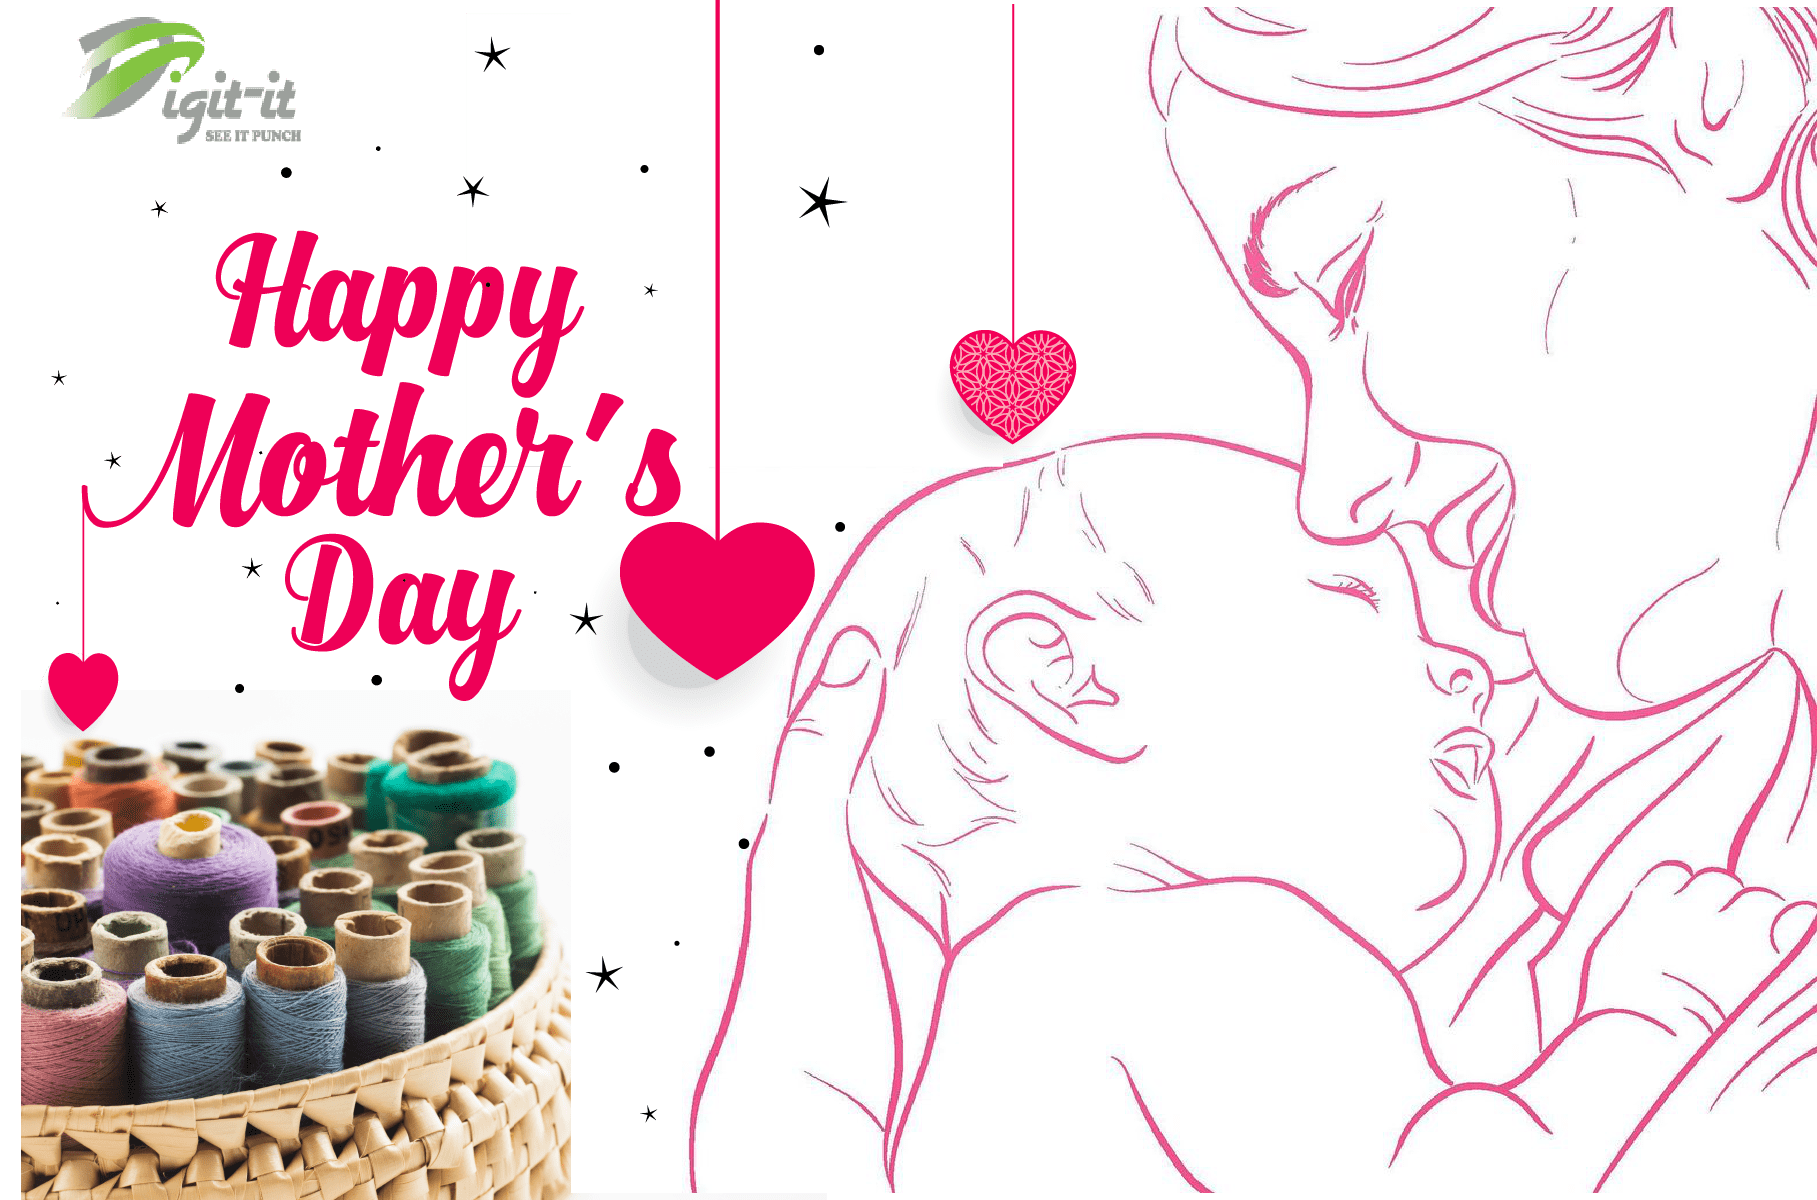 Embroidery Designing for Mothers Day